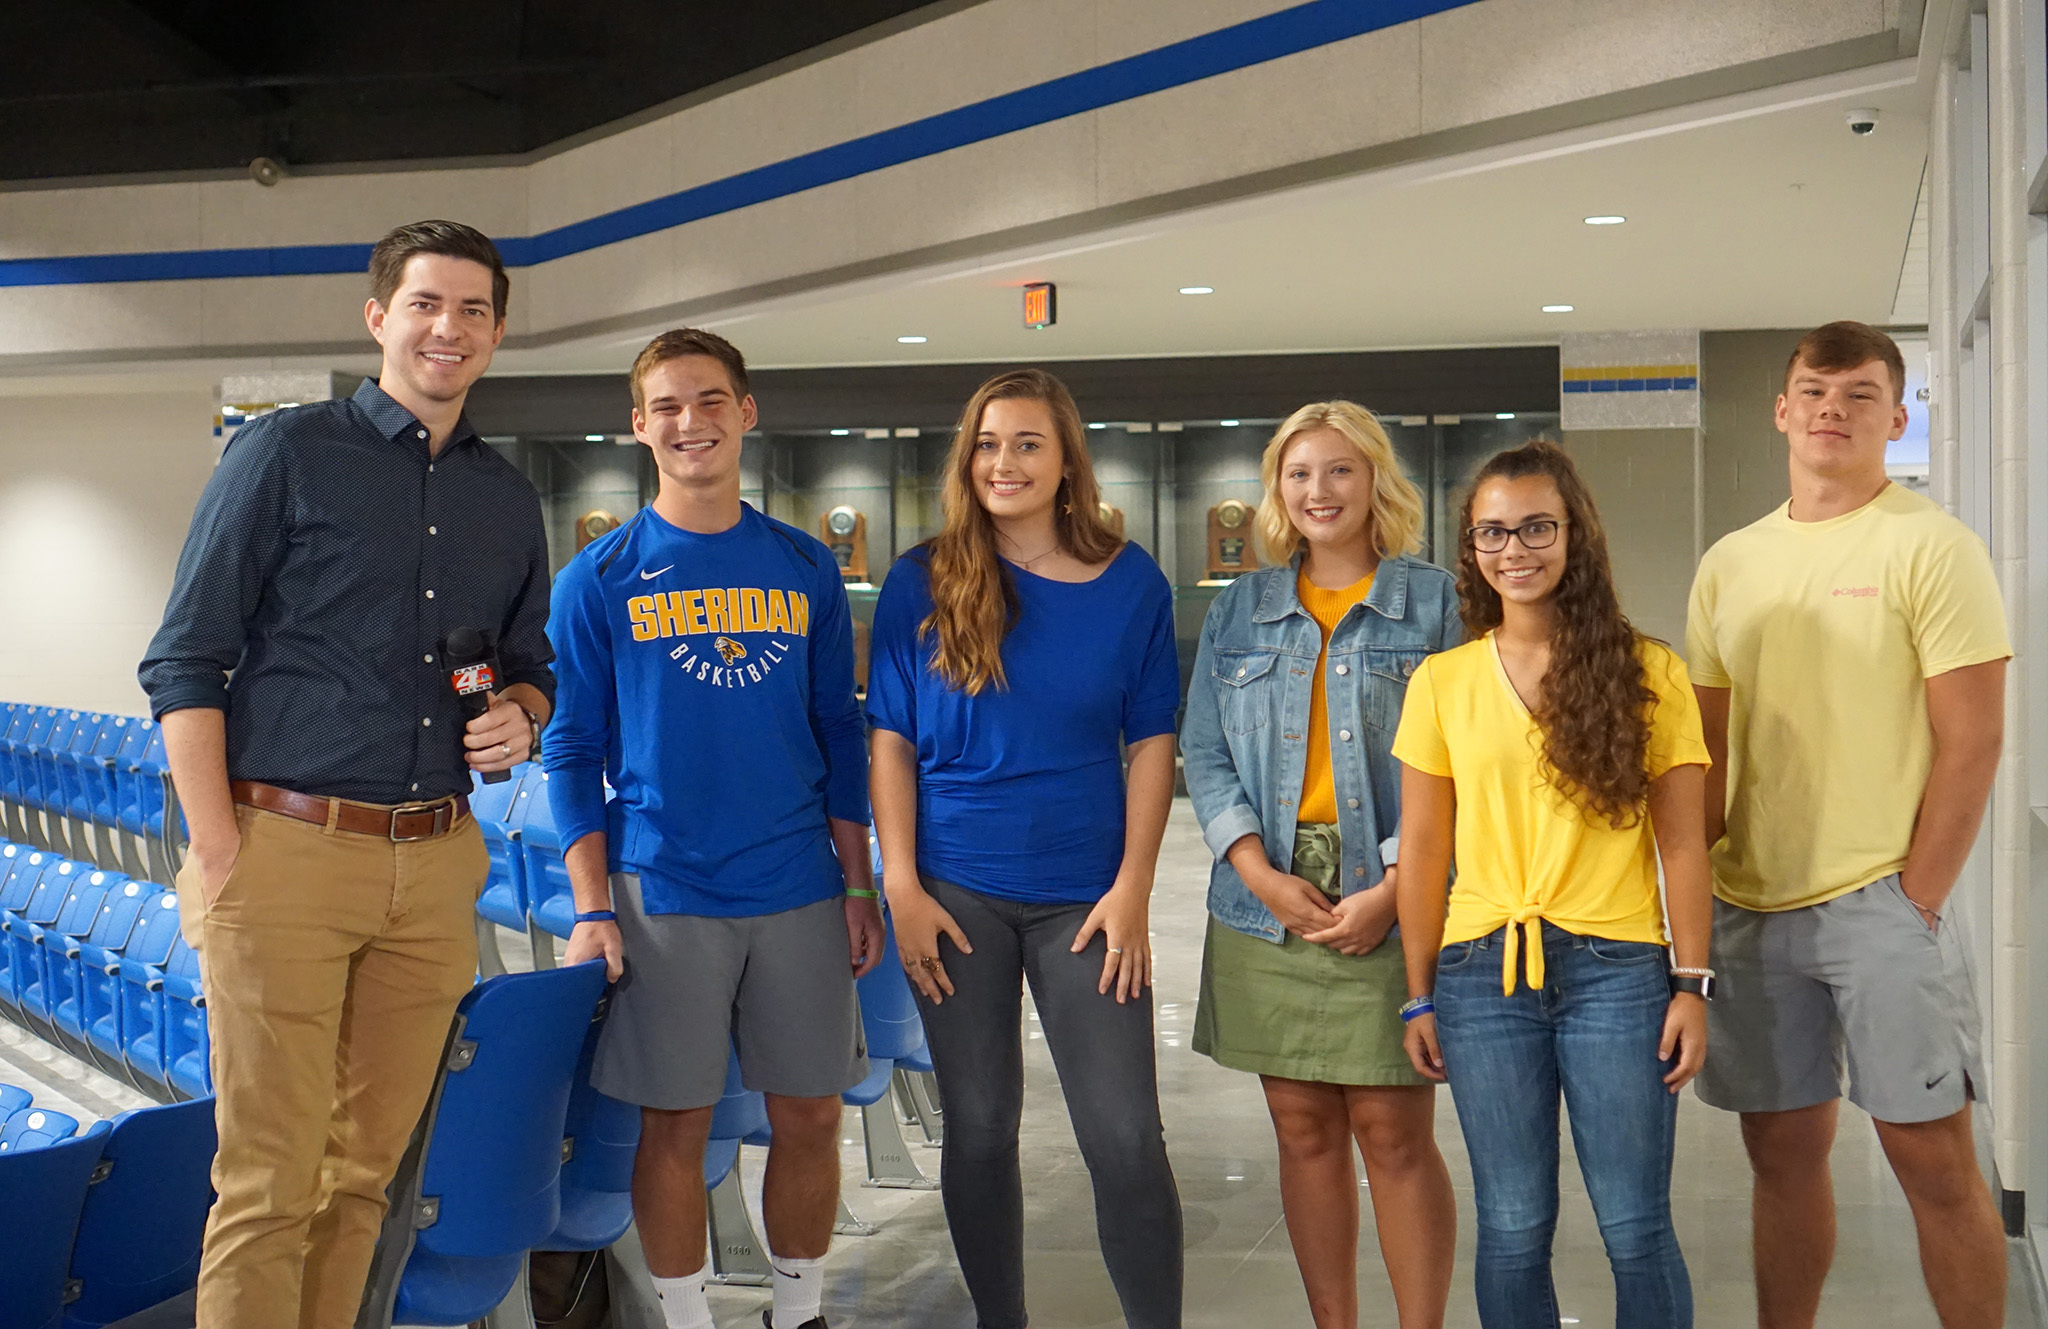 Channel 4 visits SHS